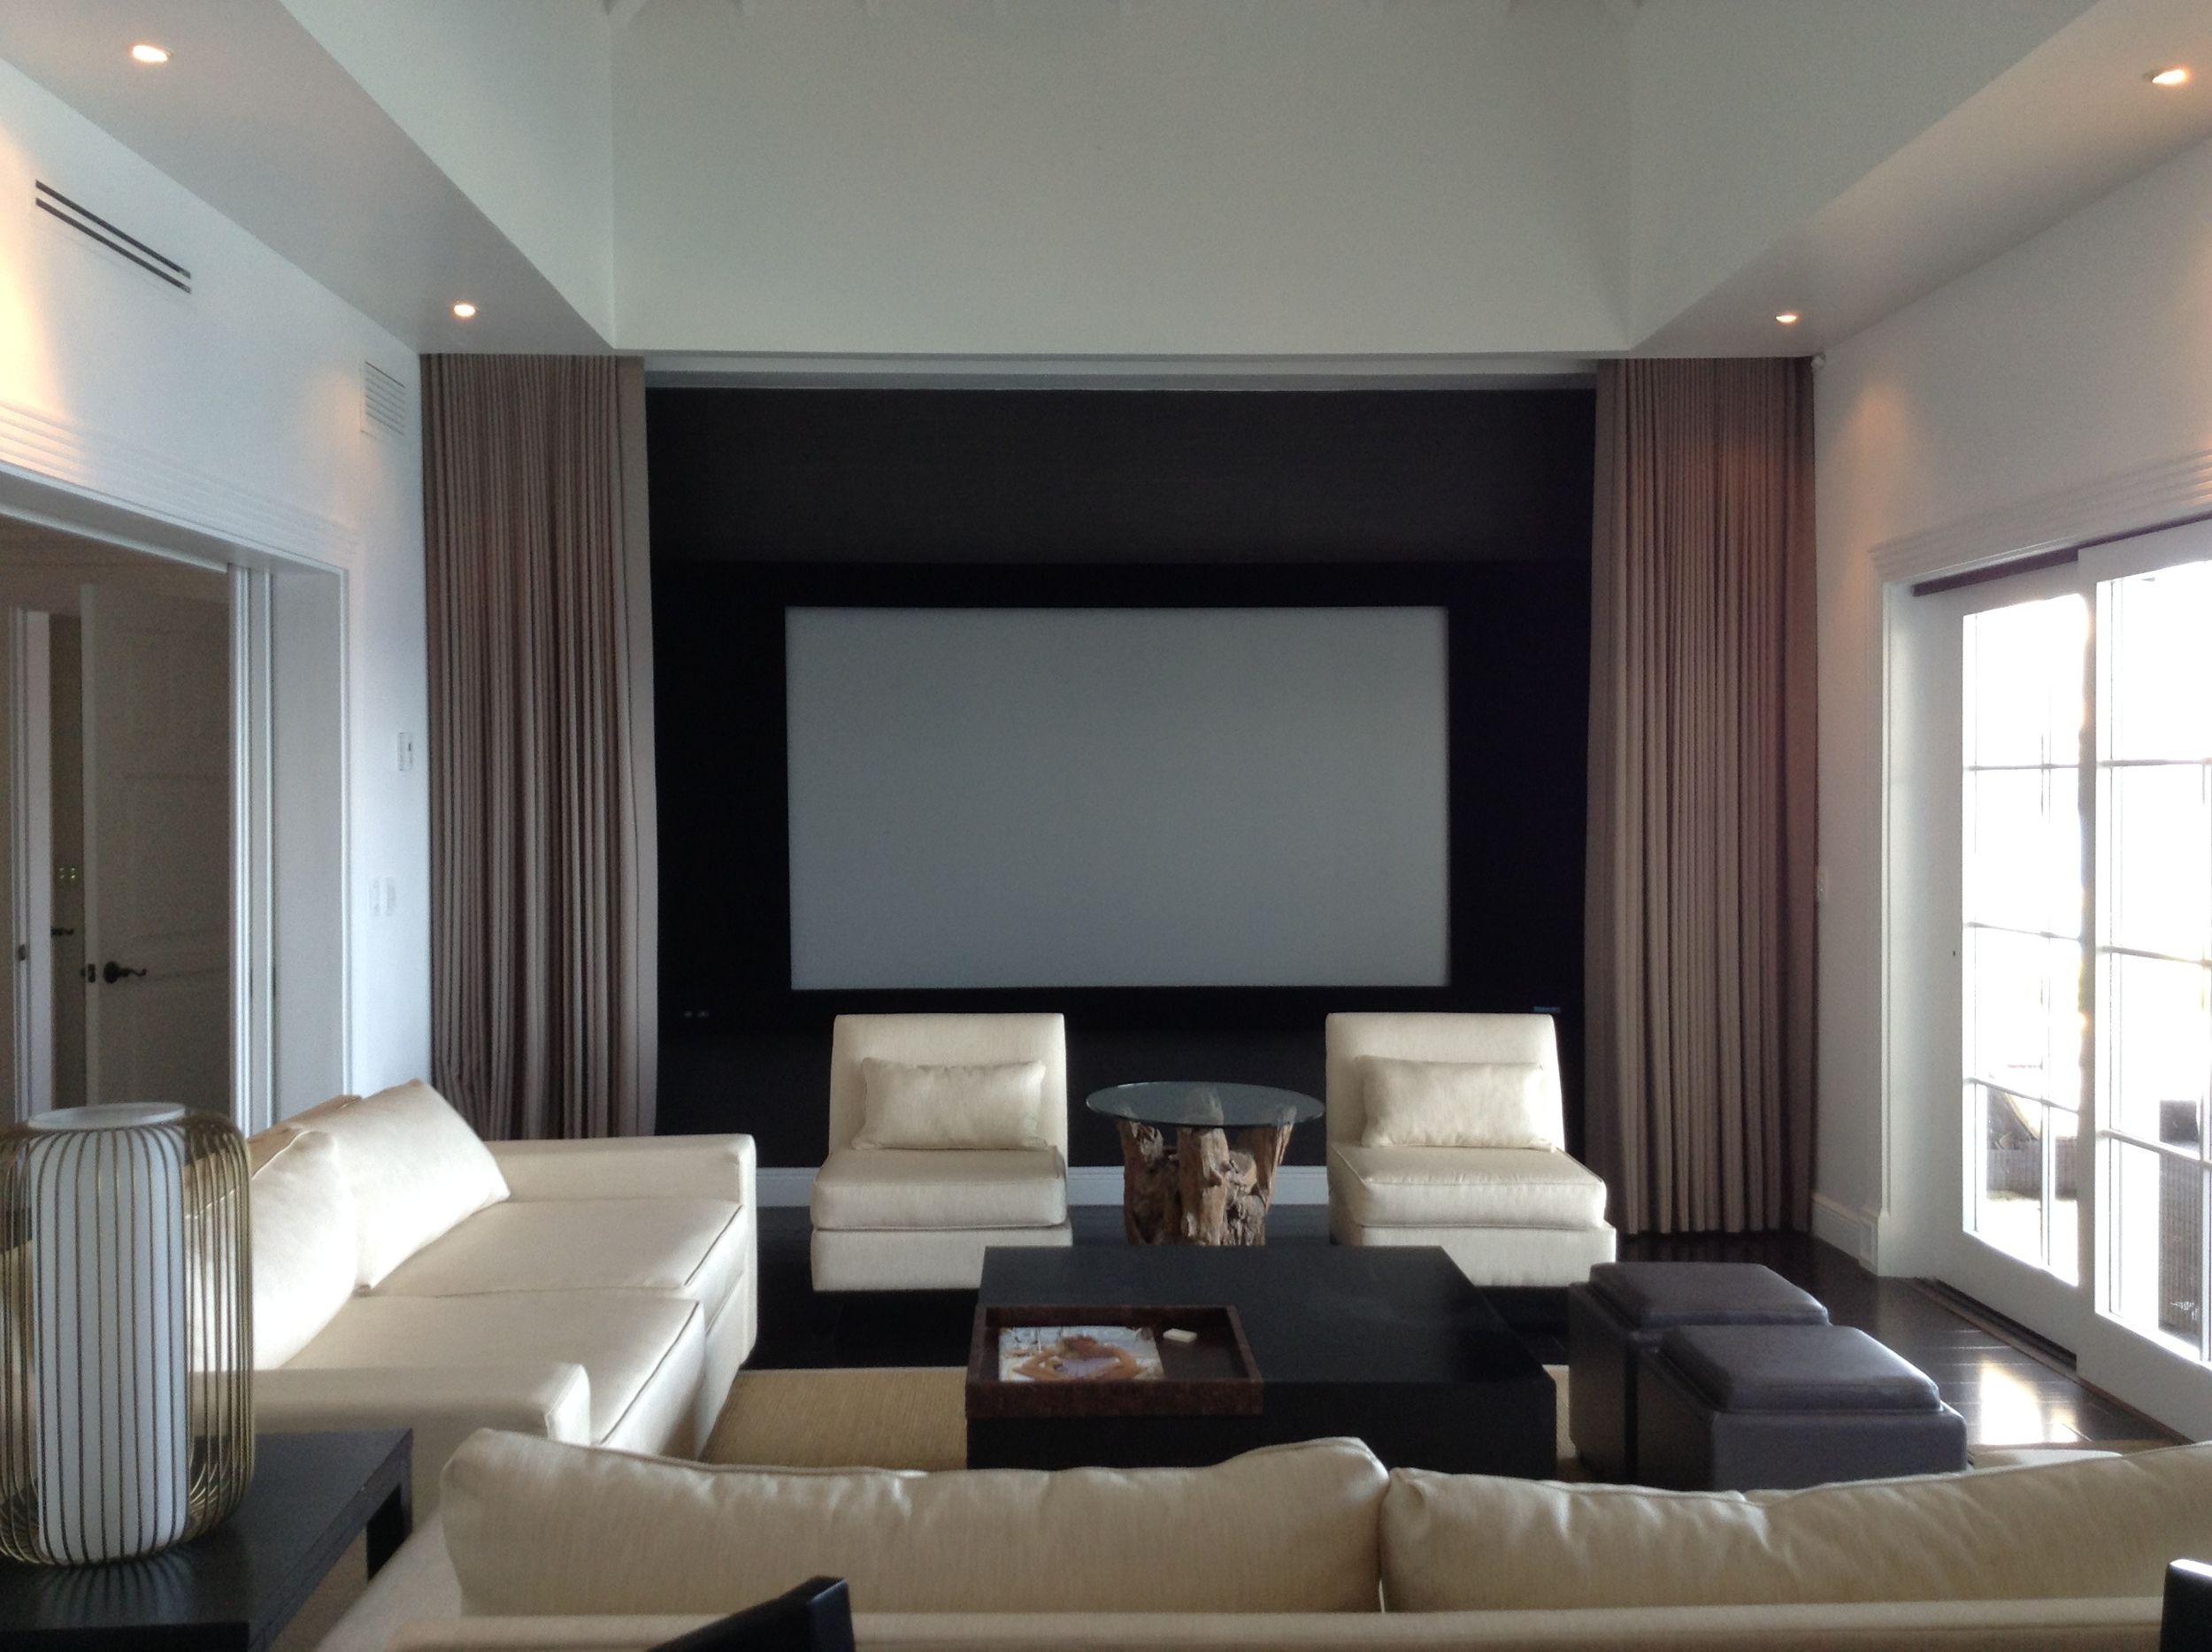 This is the best movie theater in the Caribbean. The living room features a 7.2 JBL Synthesis system, curved automasking projection screen, and 3D projector. When the projector turns on, the curtains in front of the screen open and the blinds roll down to shut out the Caribbean sun.